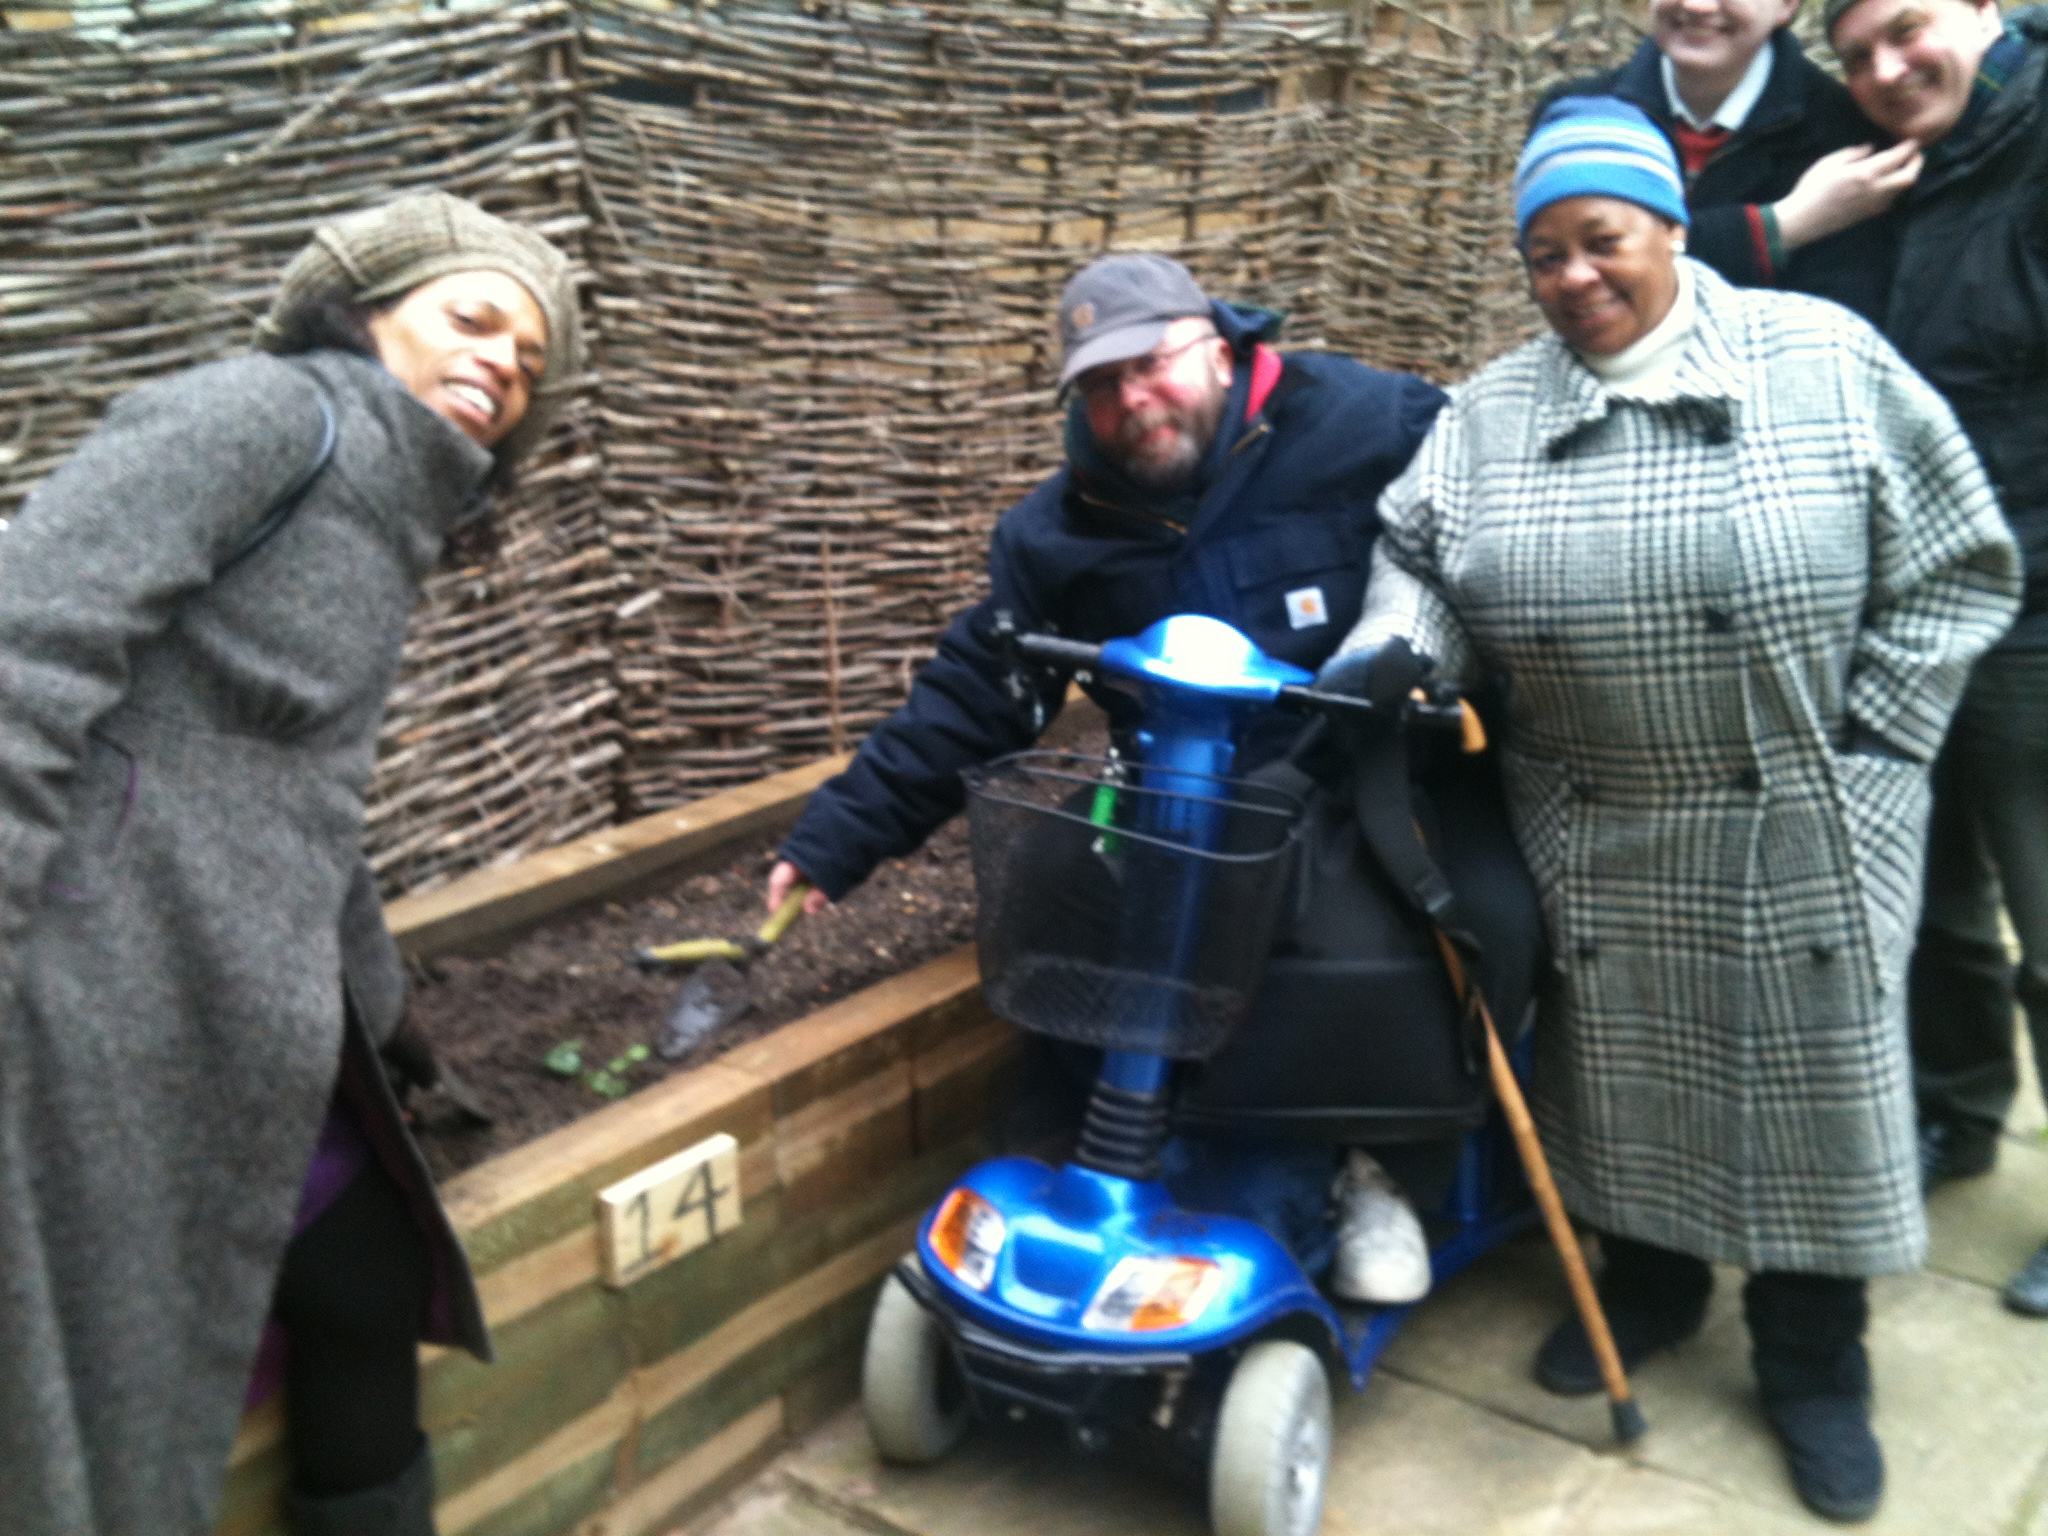 Pilot community growing project with NHS